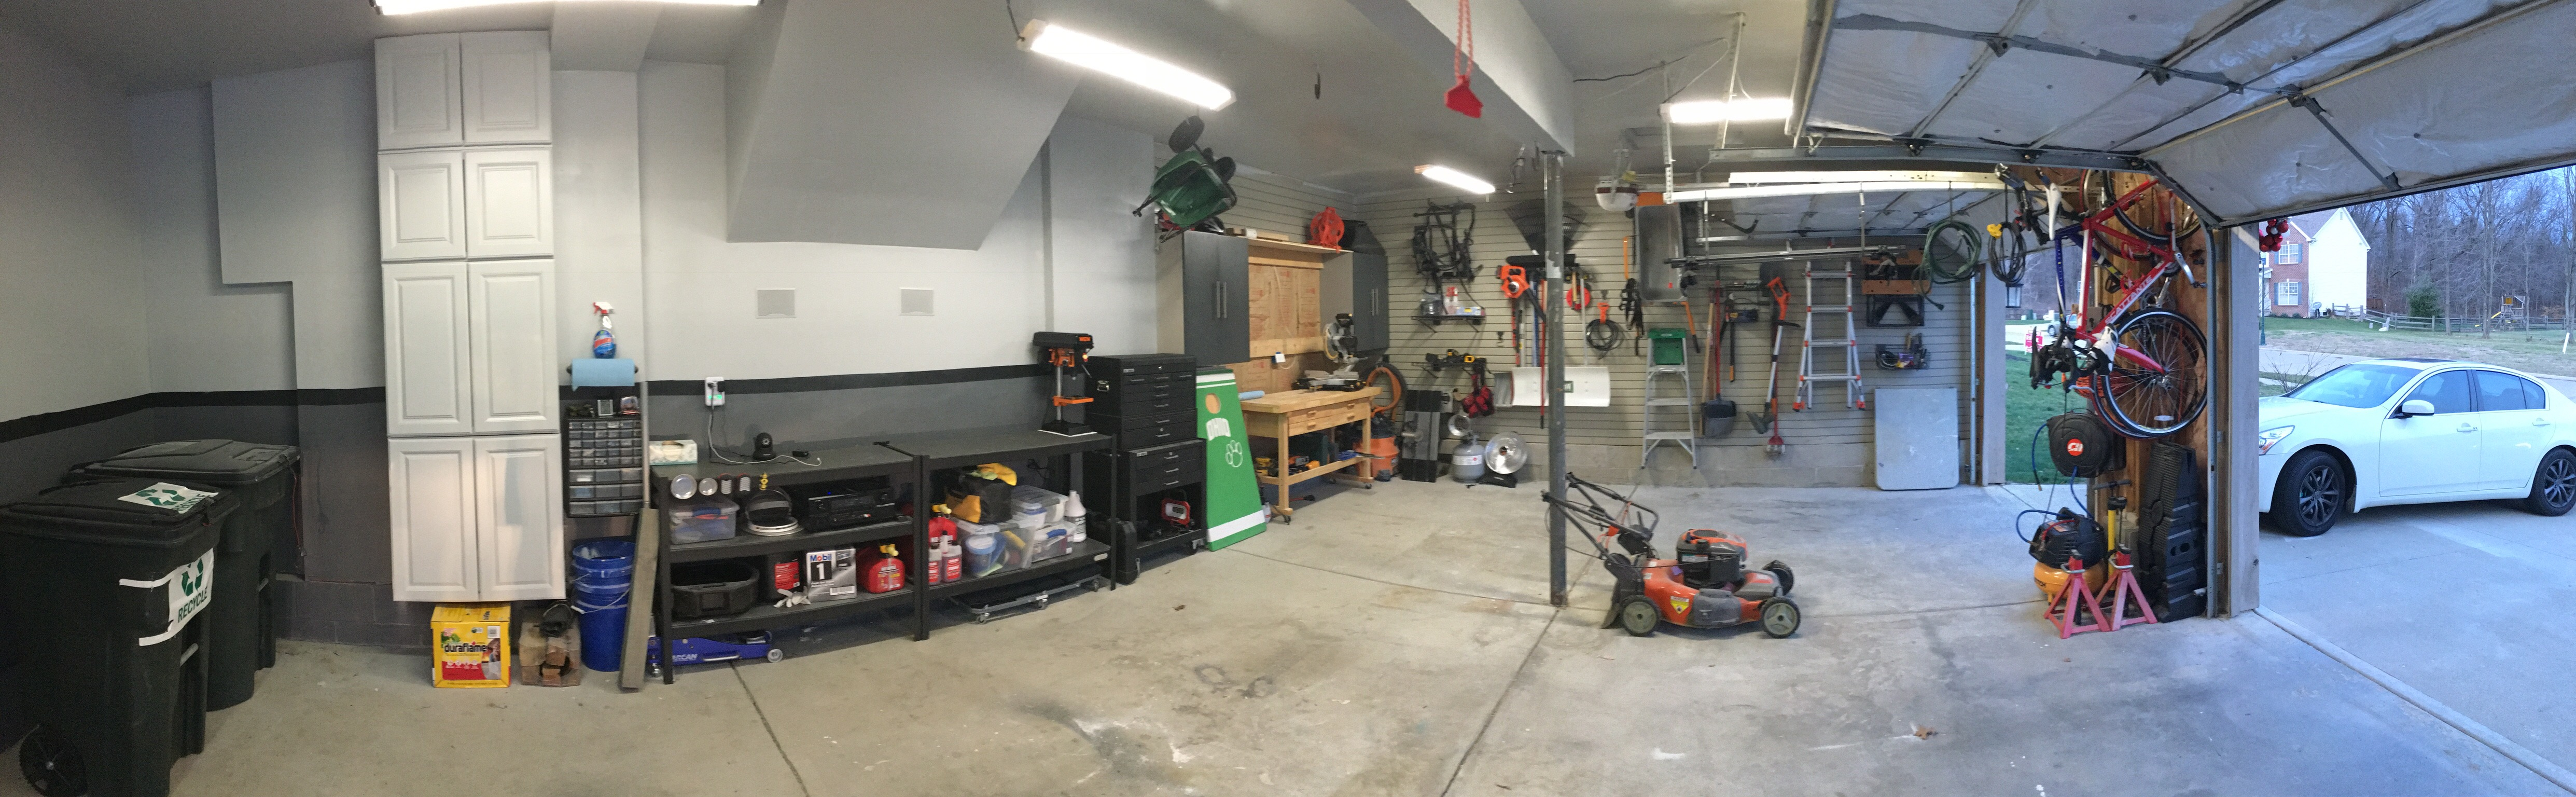 Attractive The Picture Above Is From One Iteration Of My Ever Changing Garage Layout,  And Organization. As I Continue To Add To My Collection Of Tools I Now  Leverage A ...